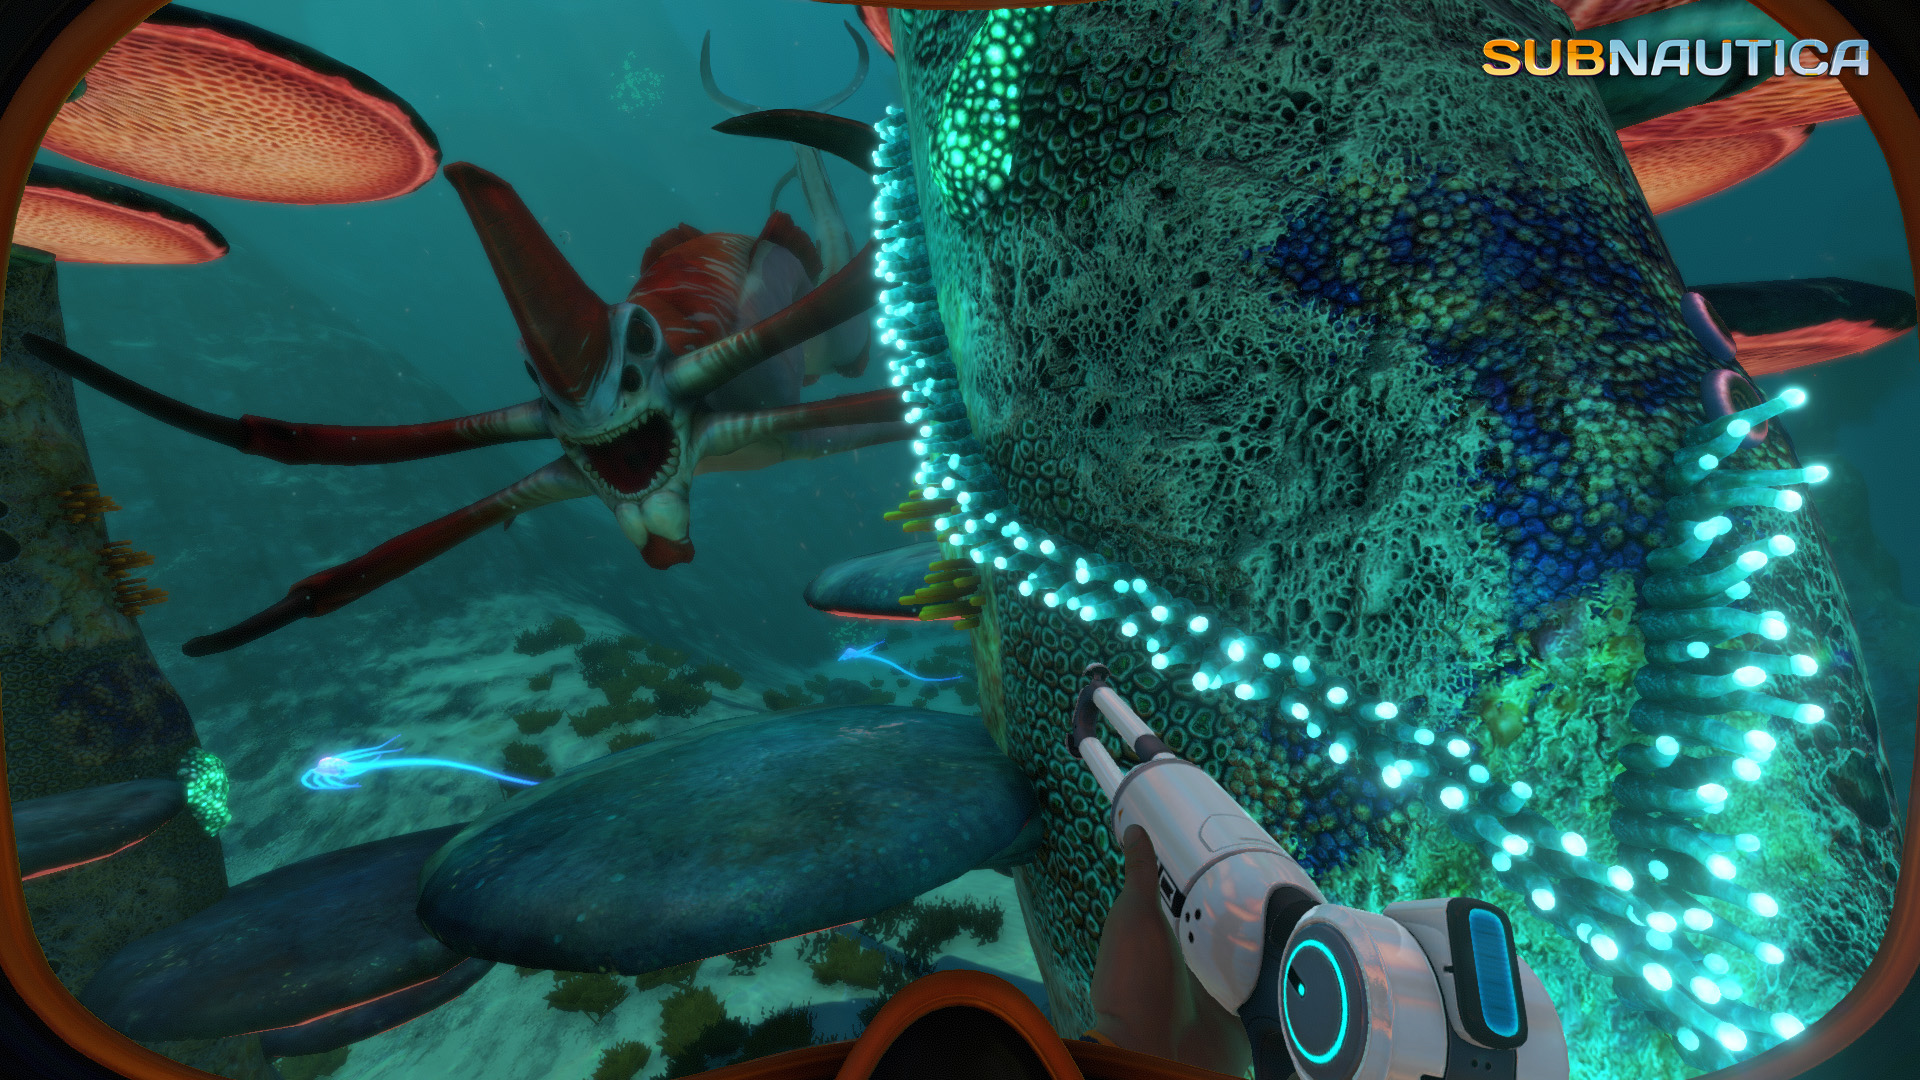 Subnautica is one of the best survival games out there and now it's coming to PS4 screenshot